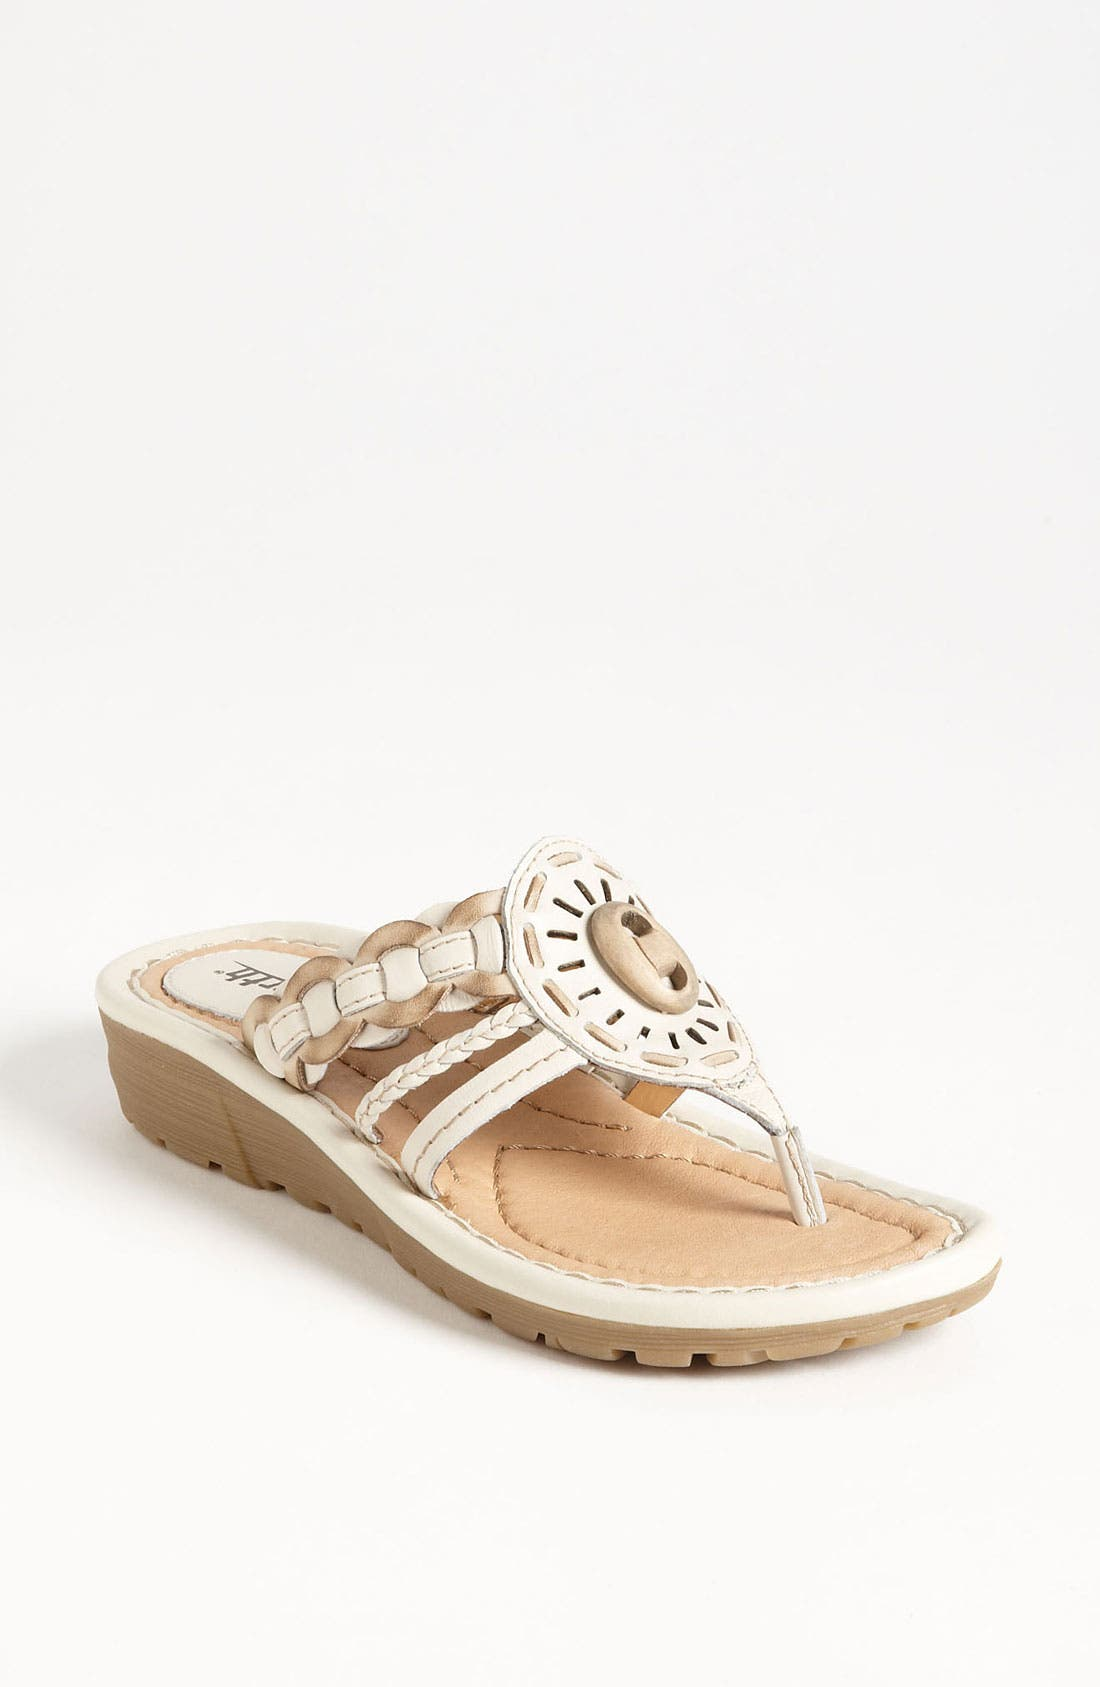 Main Image - Earth® 'Gale' Sandal